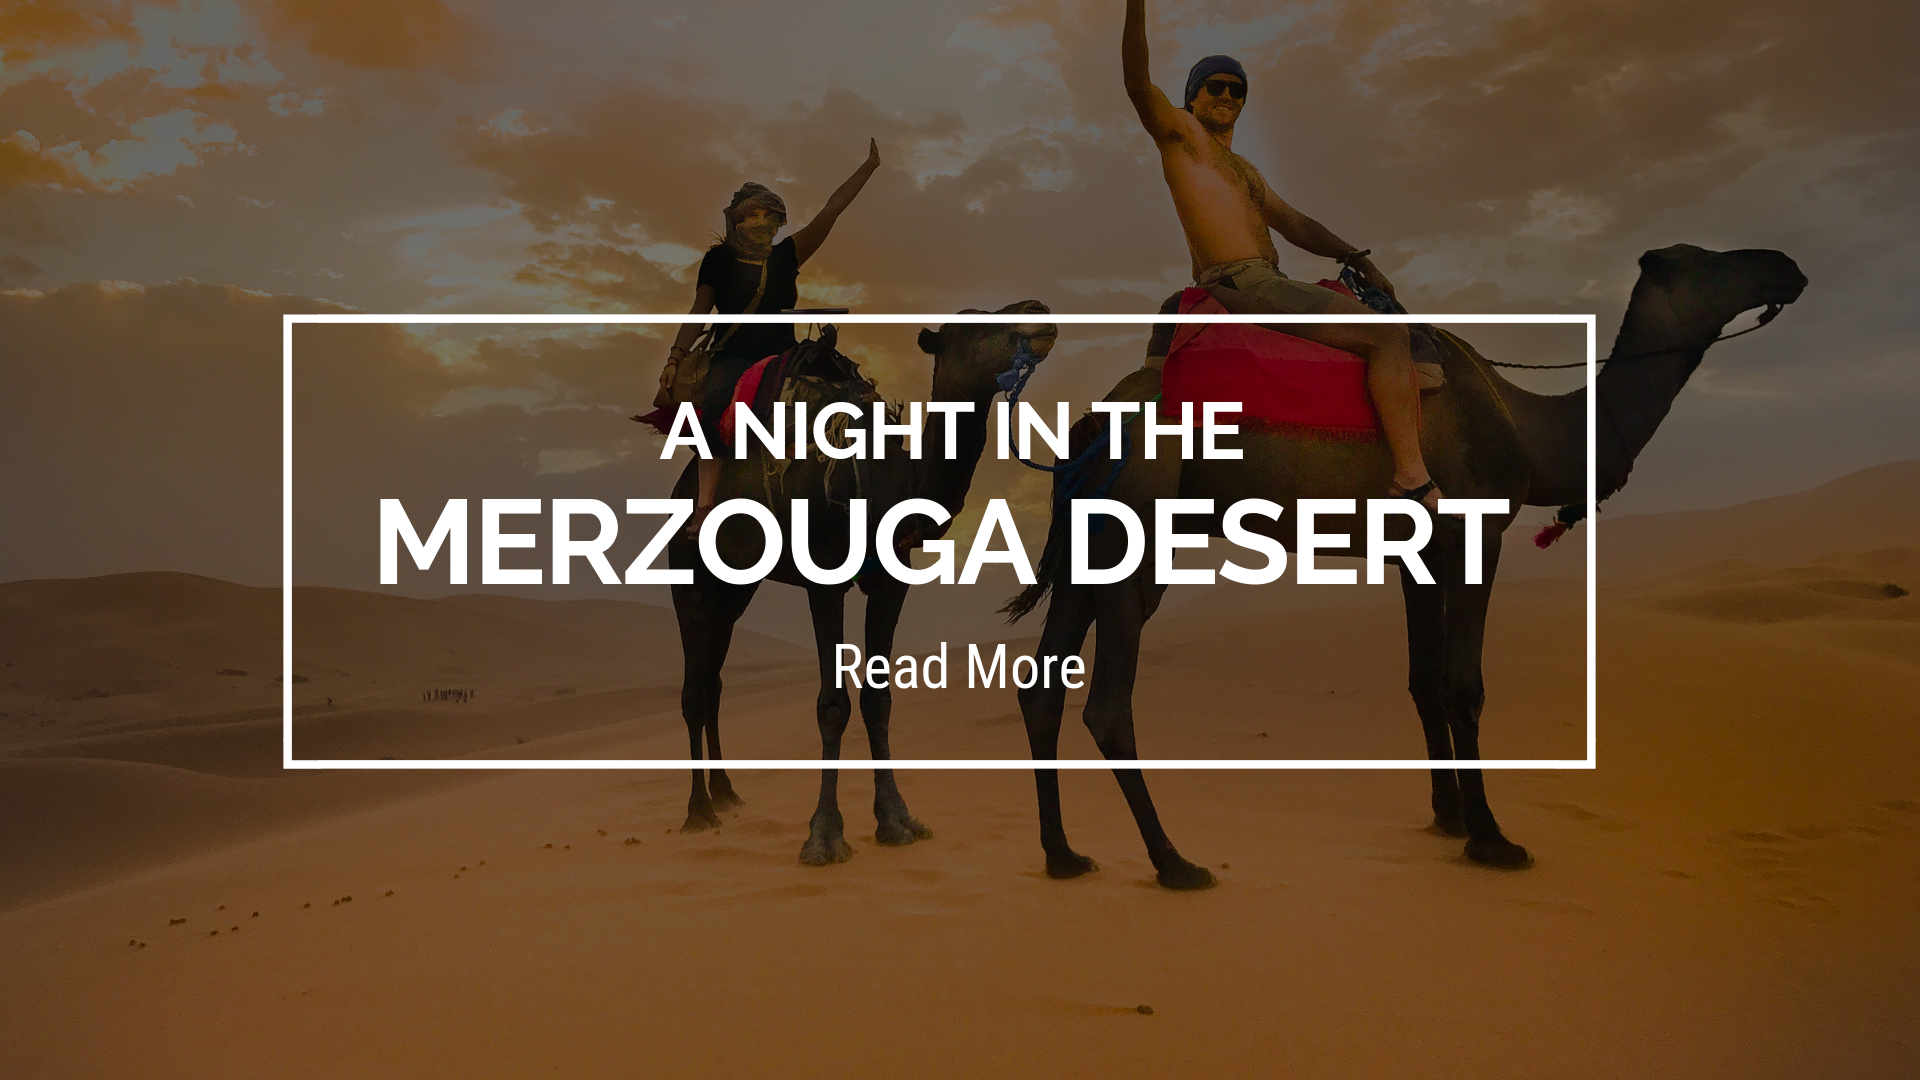 A Night in the Merzouga